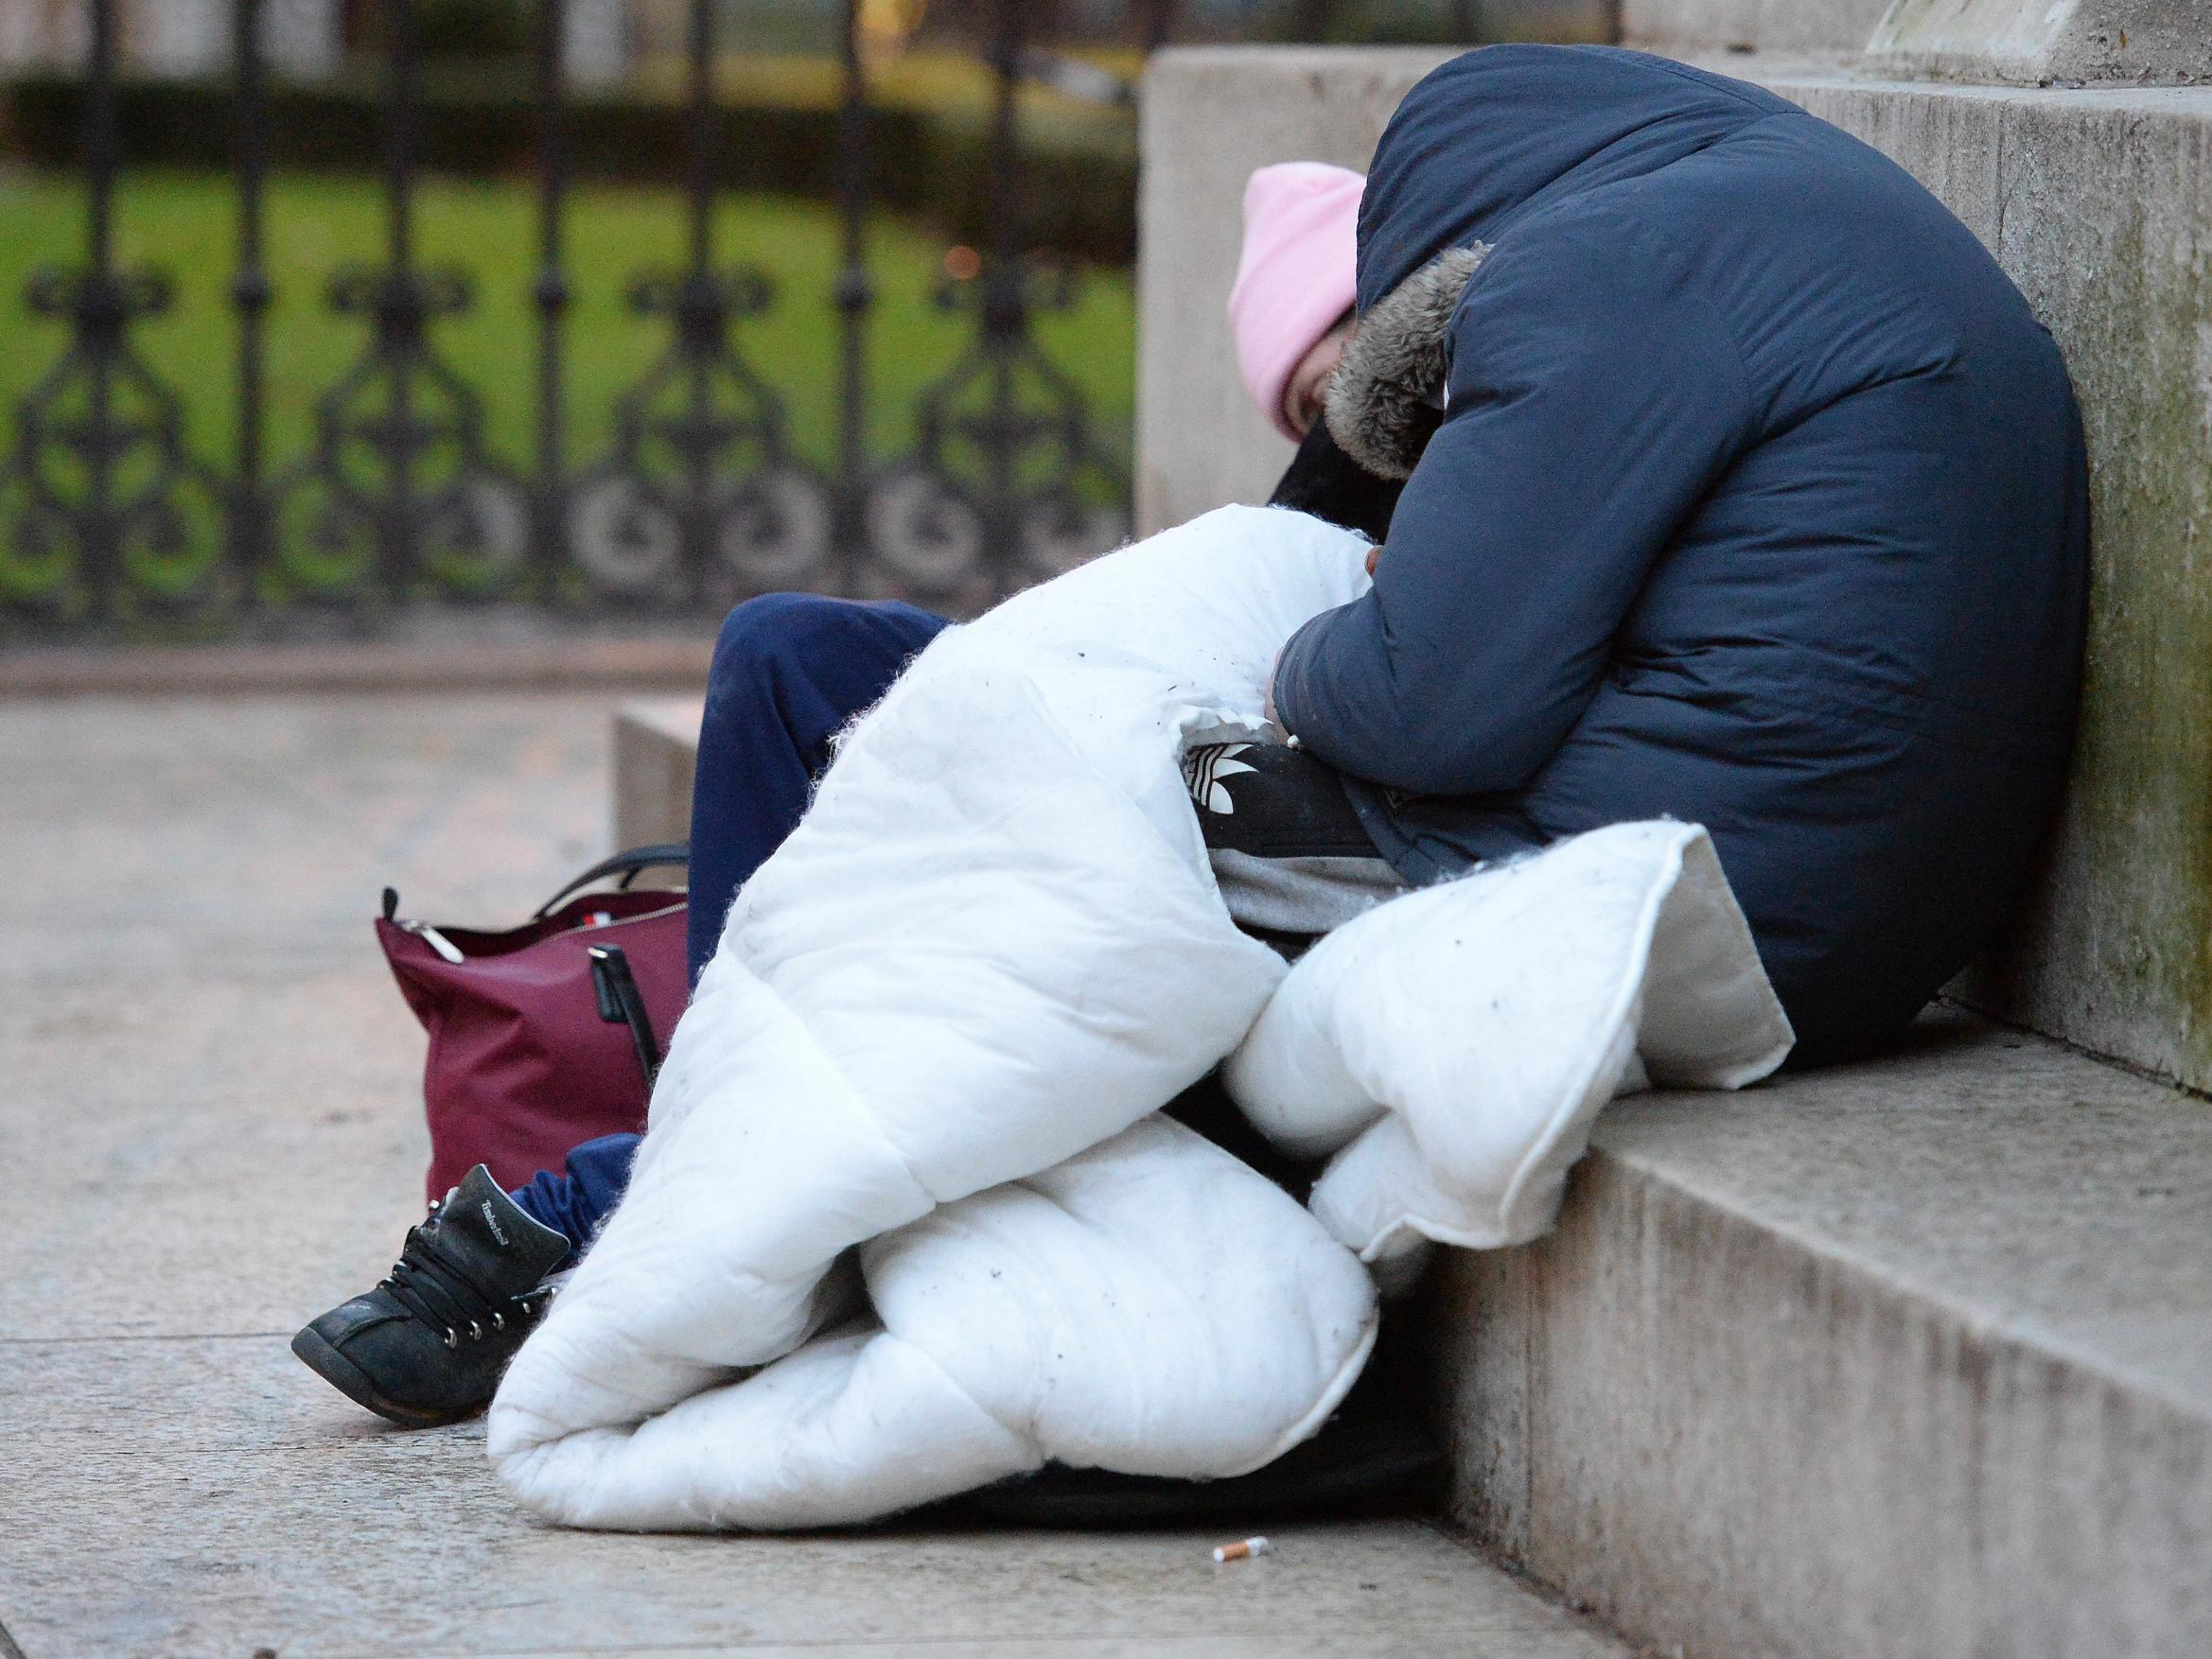 Homeless people 'scared and hungry' on streets despite promise to house them over weekend